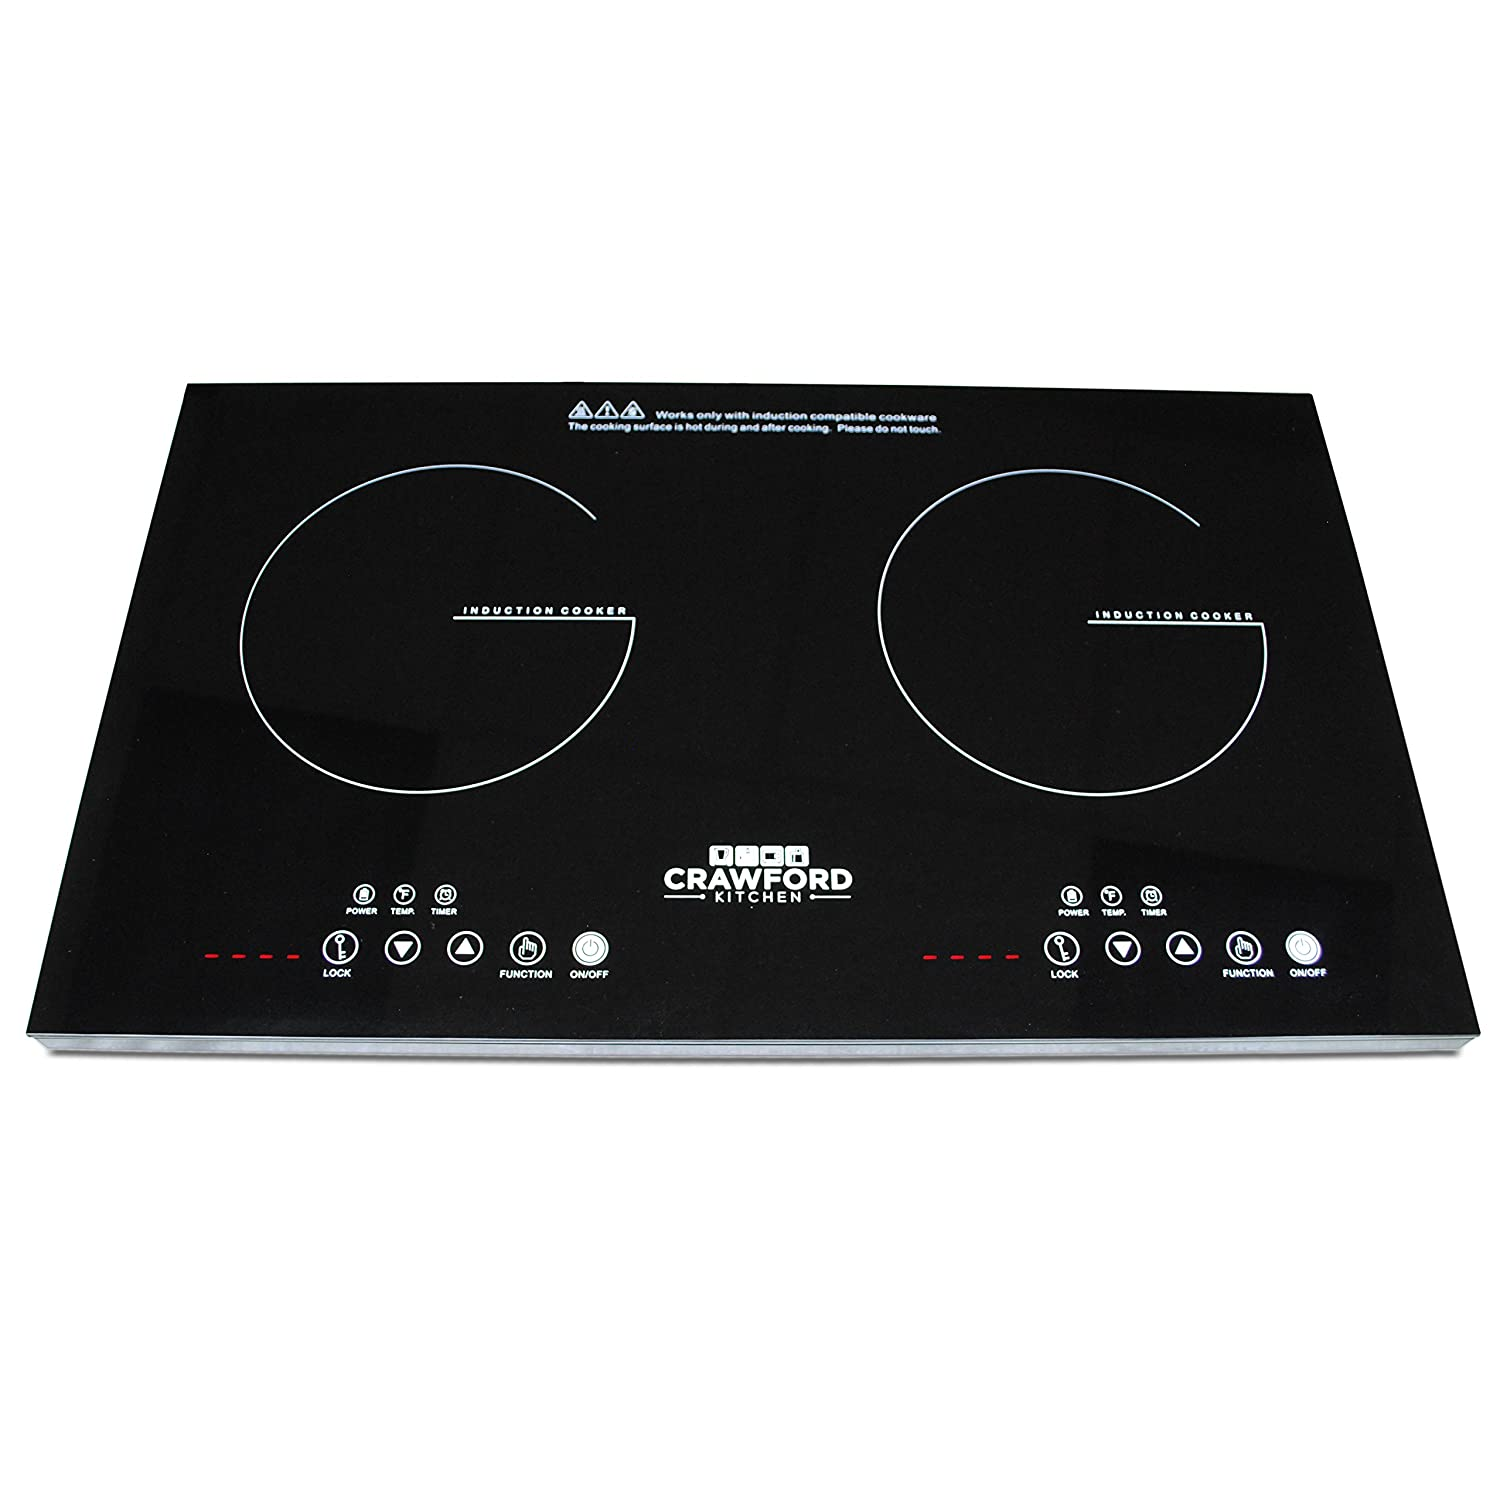 Crawford Kitchen 1800W Double Digital Induction Cooktop | Portable Countertop Design & Easy To Clean | New Touch Panel Controls (Double) IDCCKS8TC